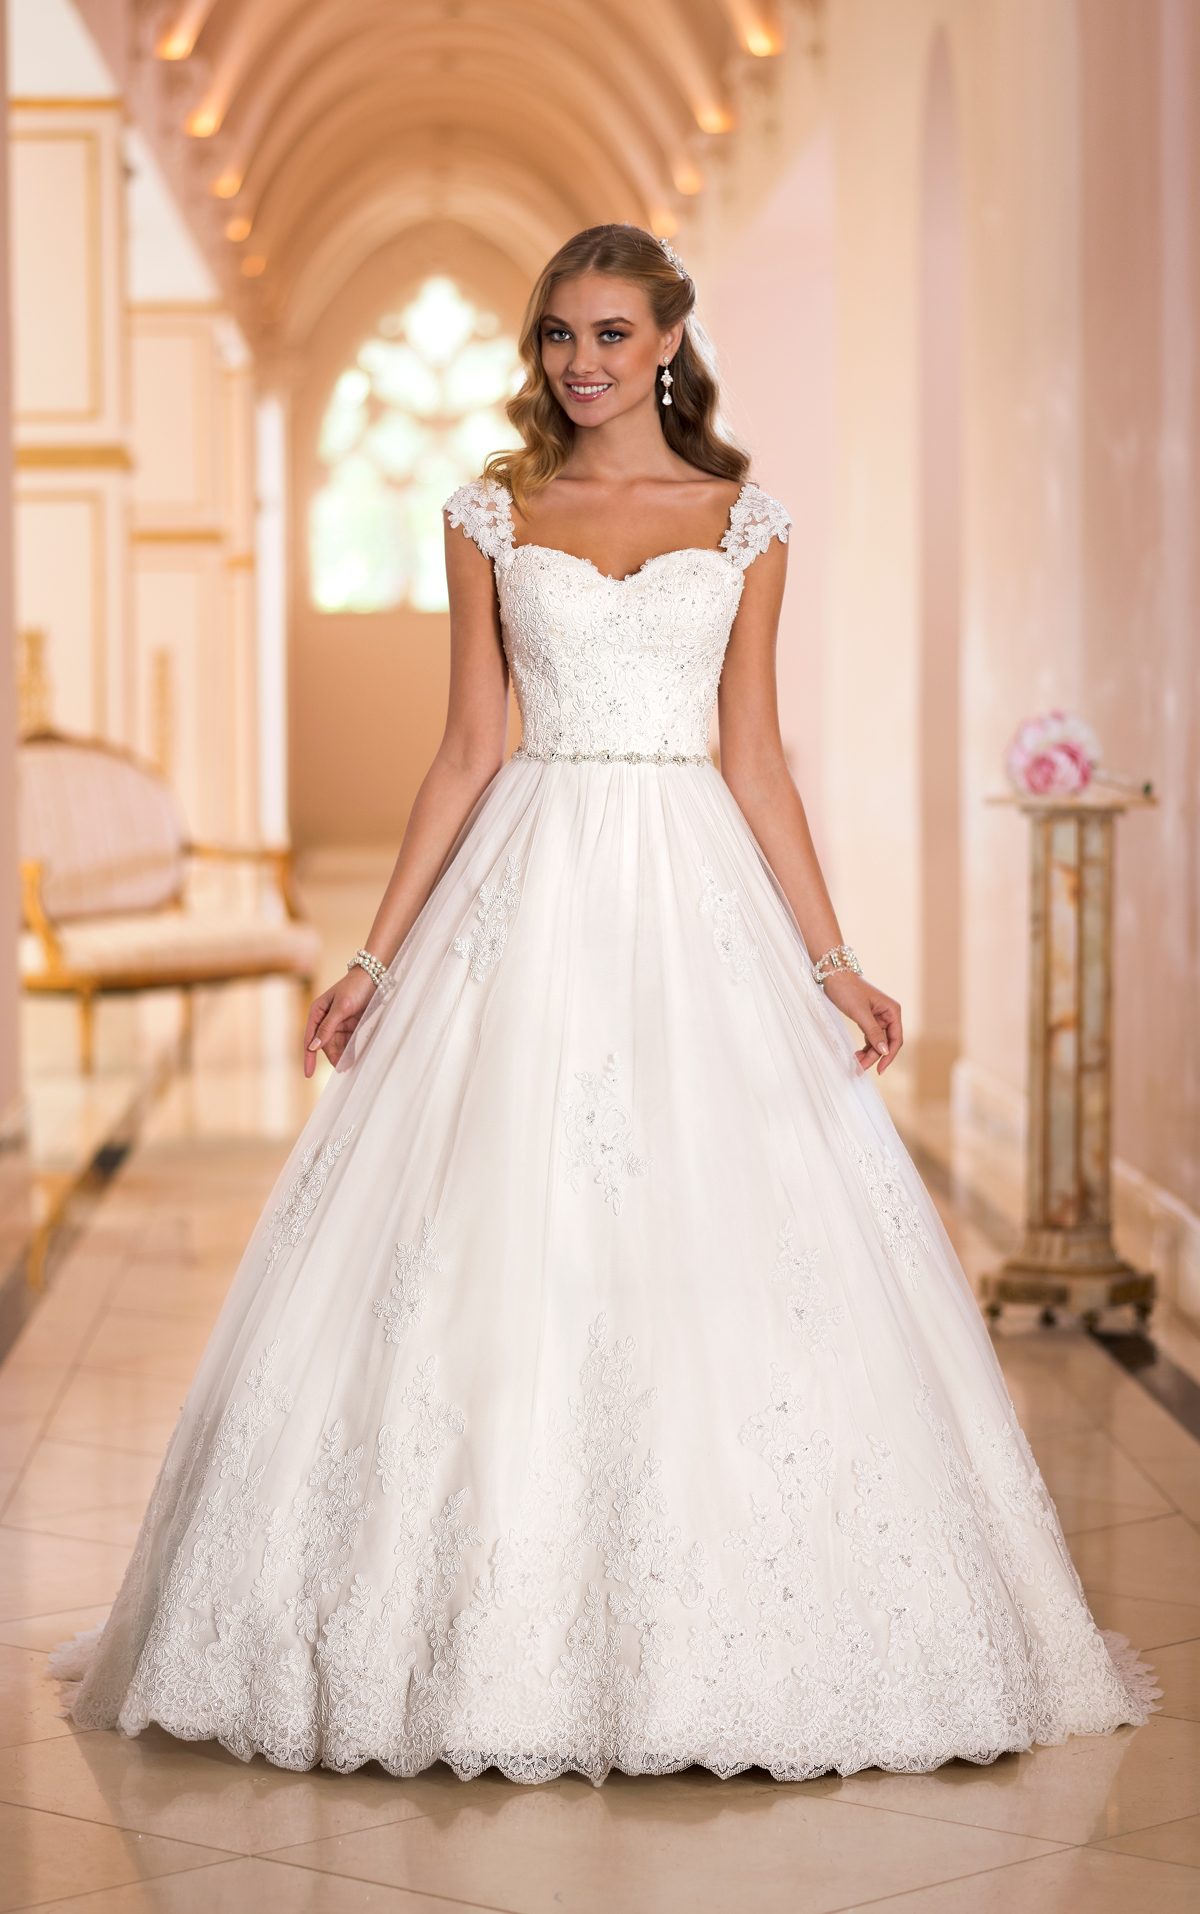 stella-york-wedding-dresses-2014-18-01162014